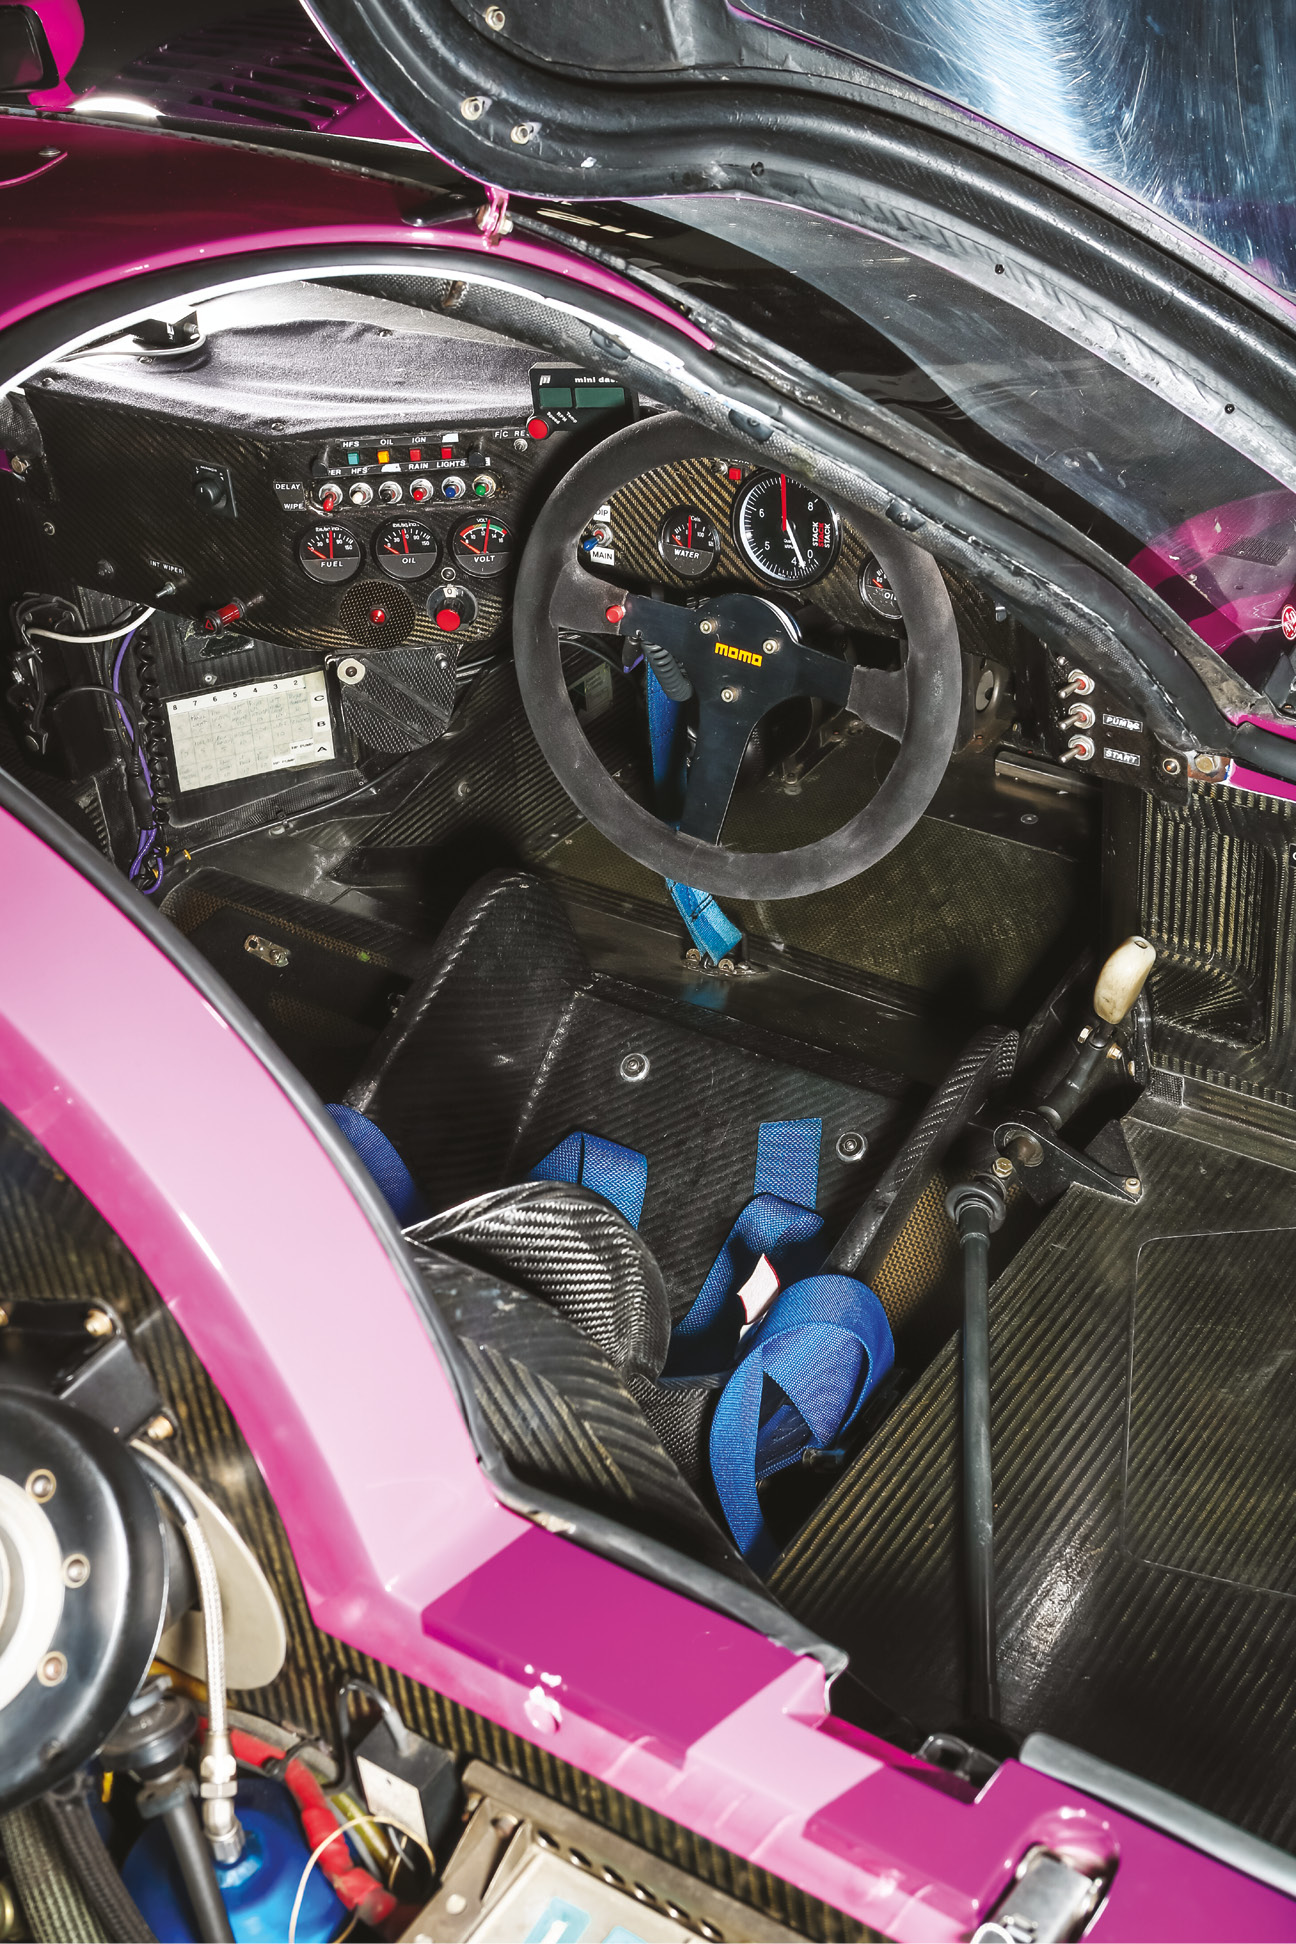 The XJR-12's carbon- fibre cell was cutting edge at the time, but lacks many driver safety systems compared with modern cars